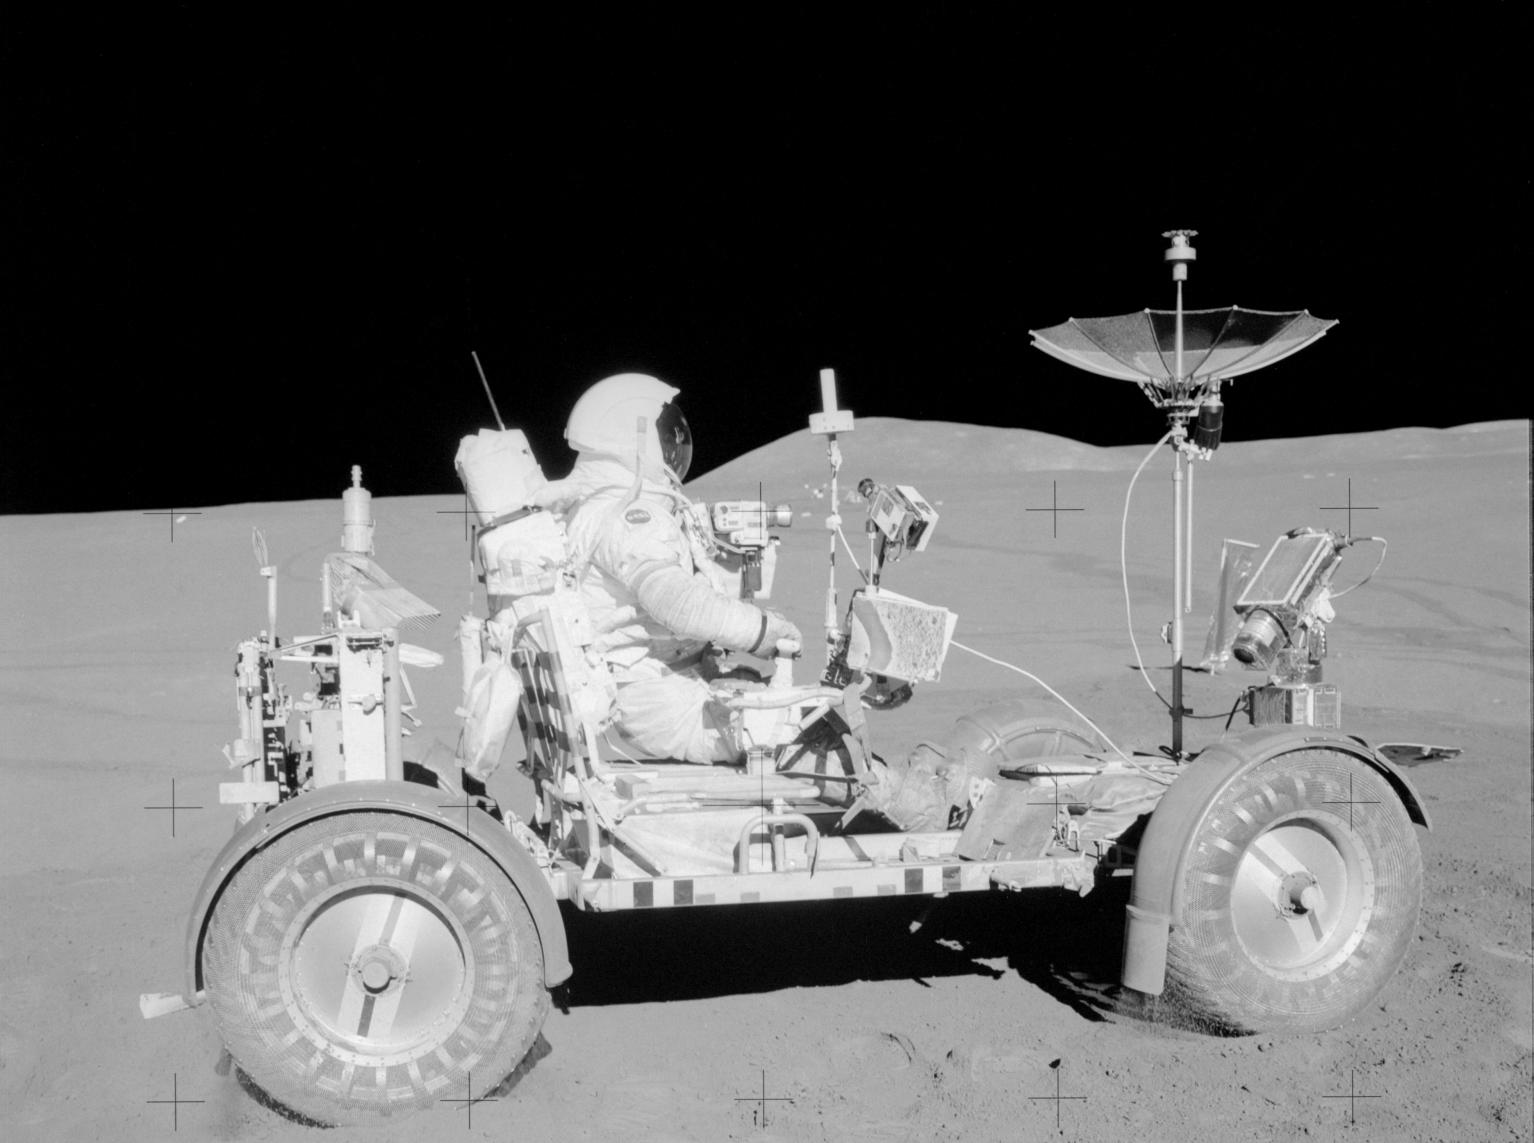 Apollo 15 Astronaut David Scott in Lunar Rover